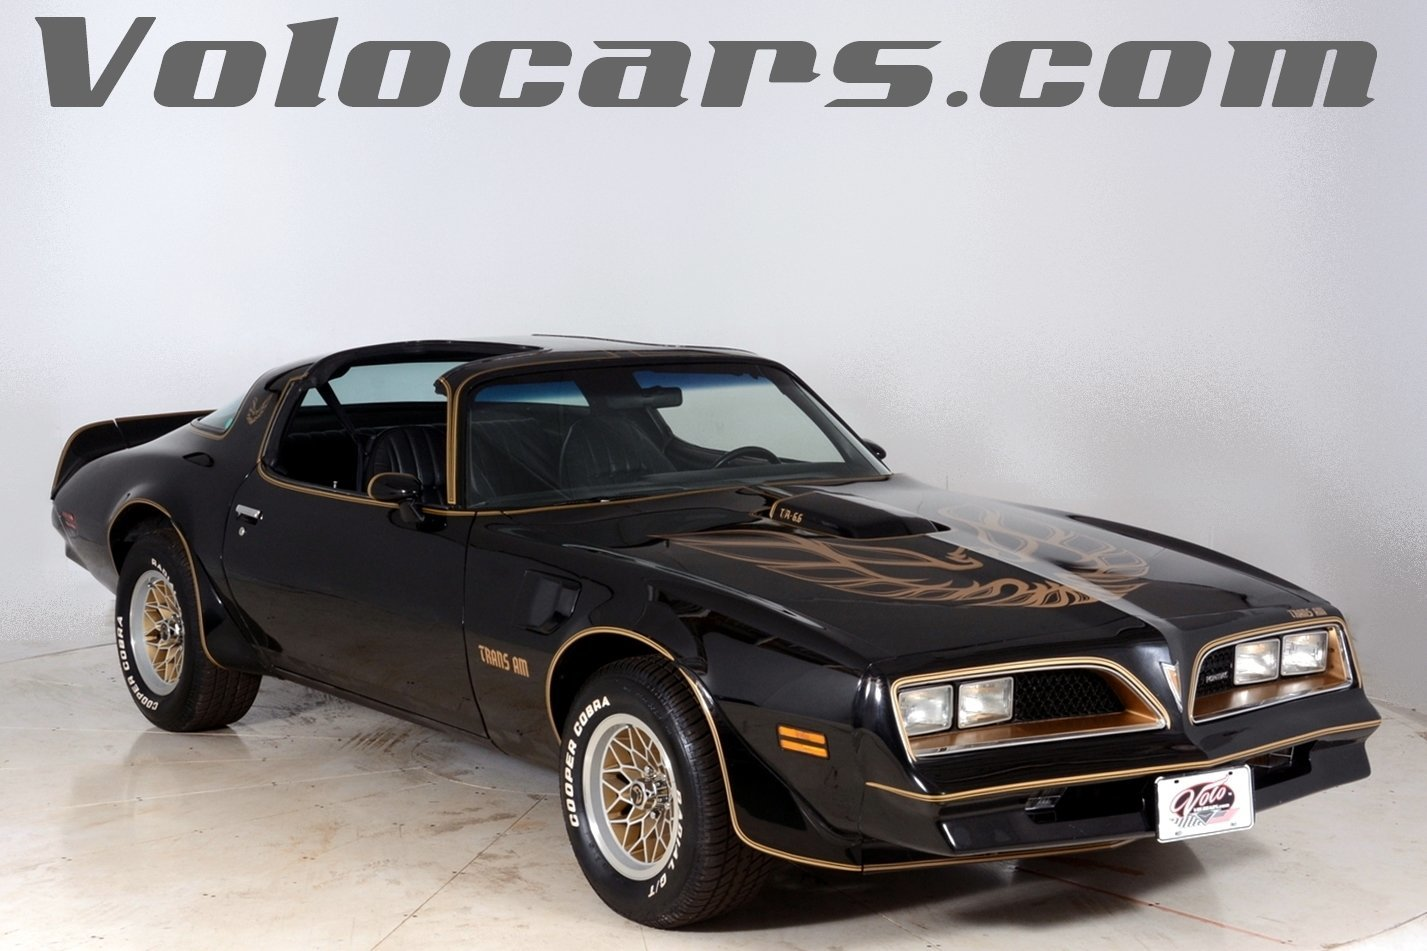 34310607282860 hd 1978 pontiac trans am special edition